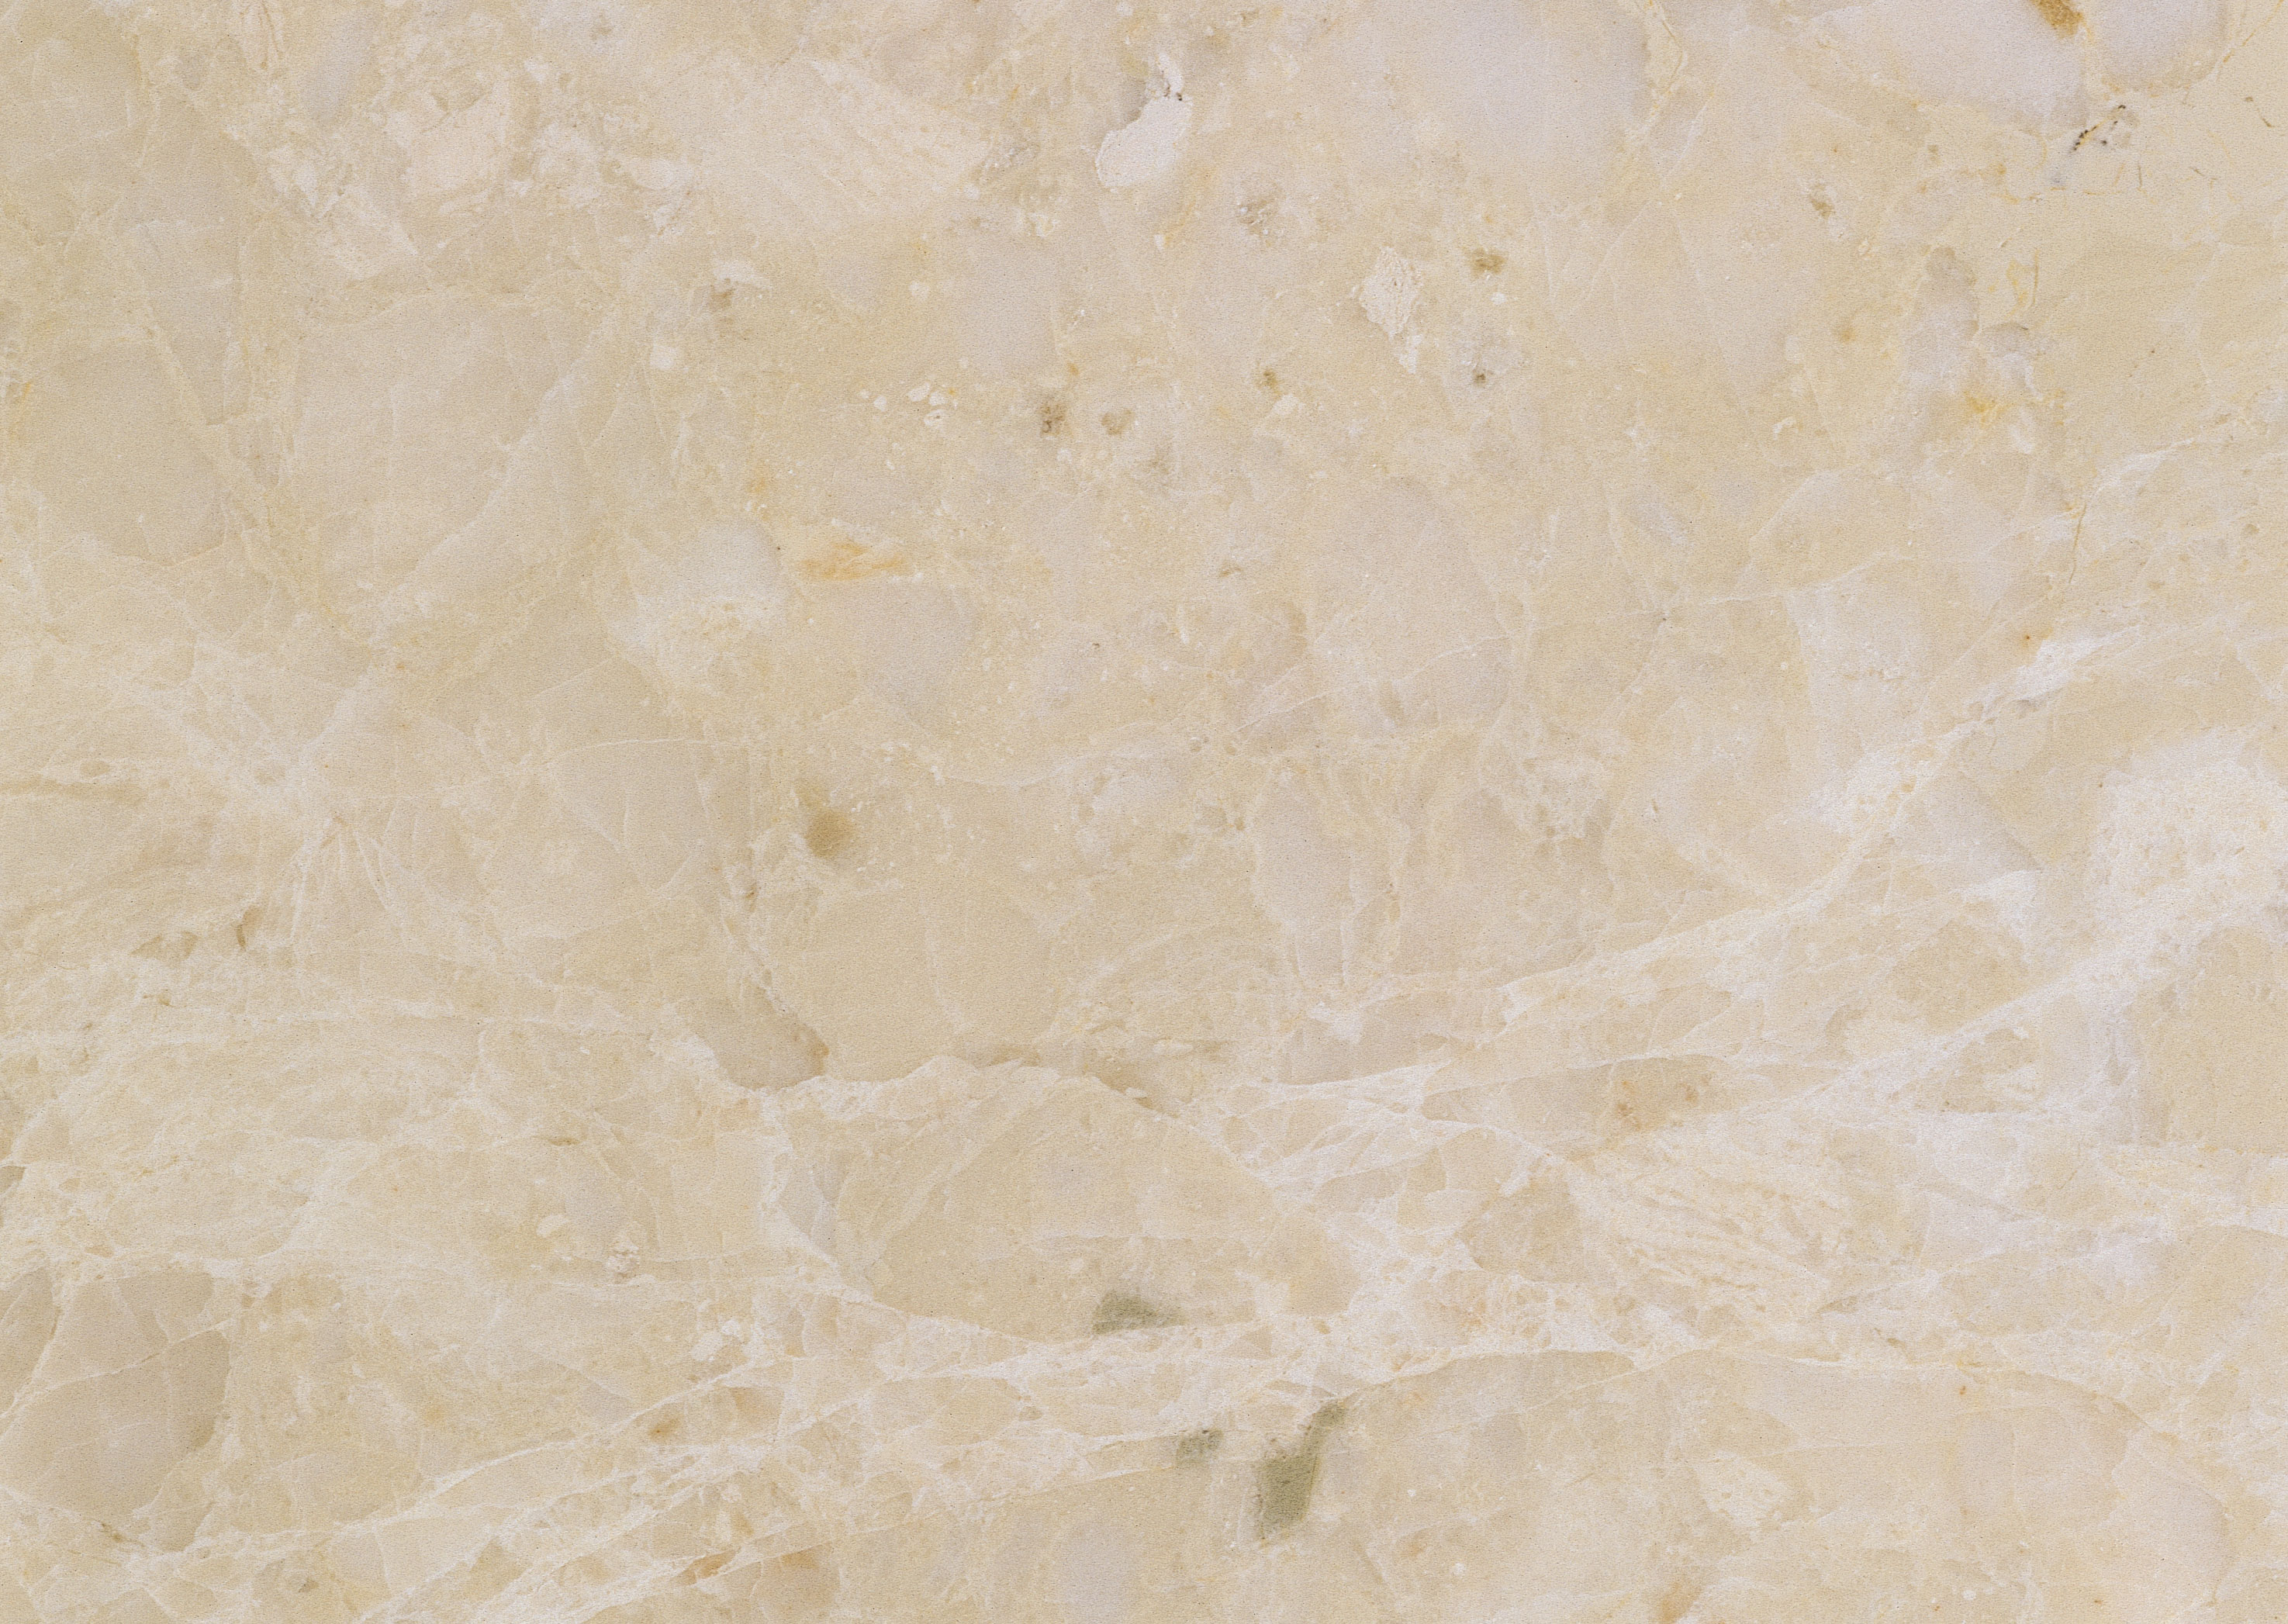 Marble Texture Background Image